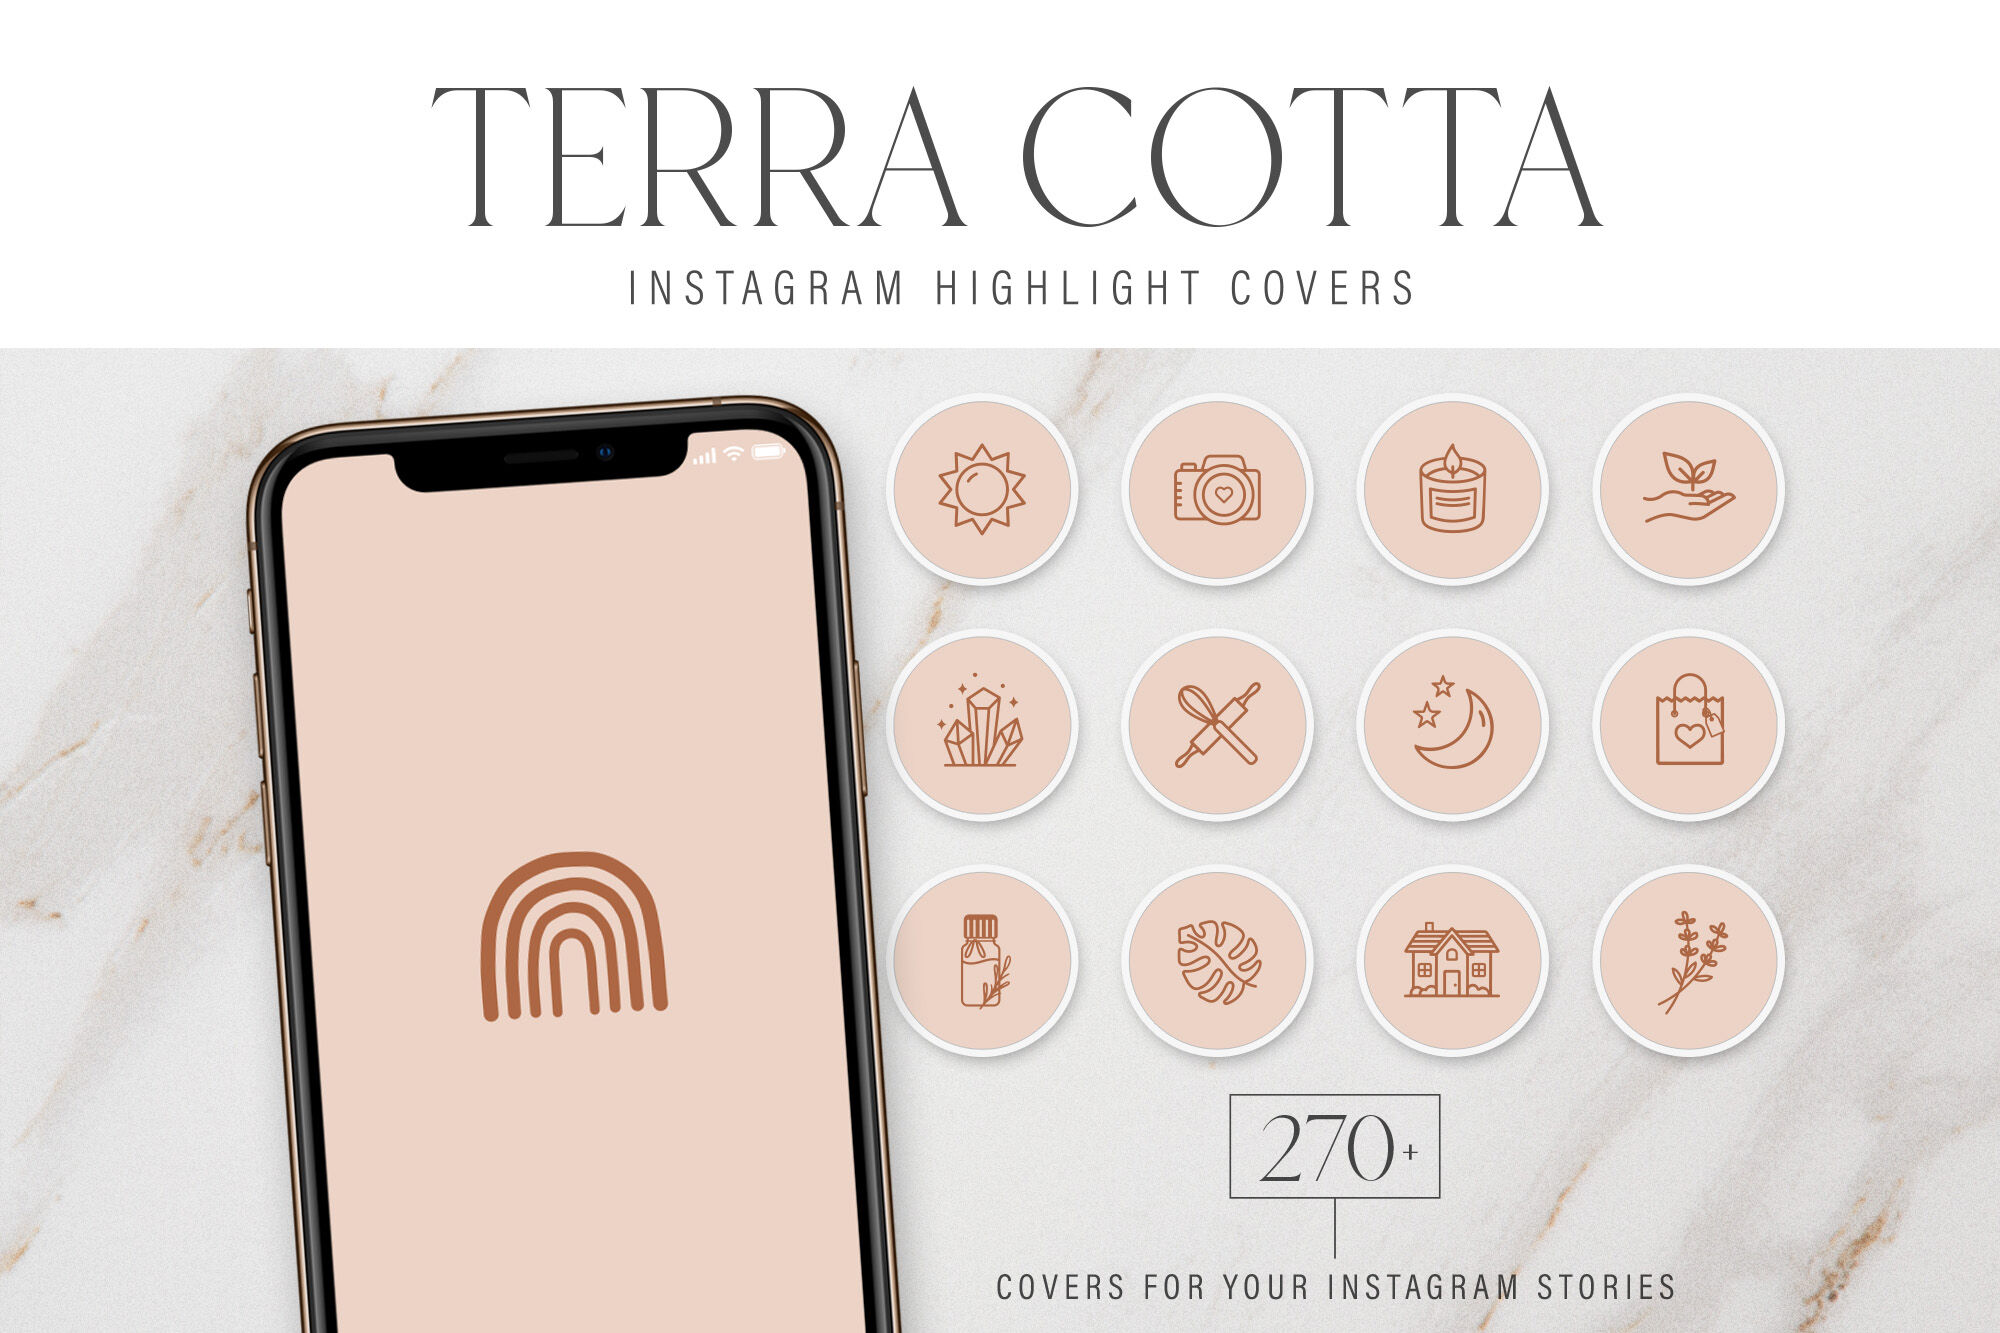 Terracotta Instagram Highlight Covers By Indie Grace